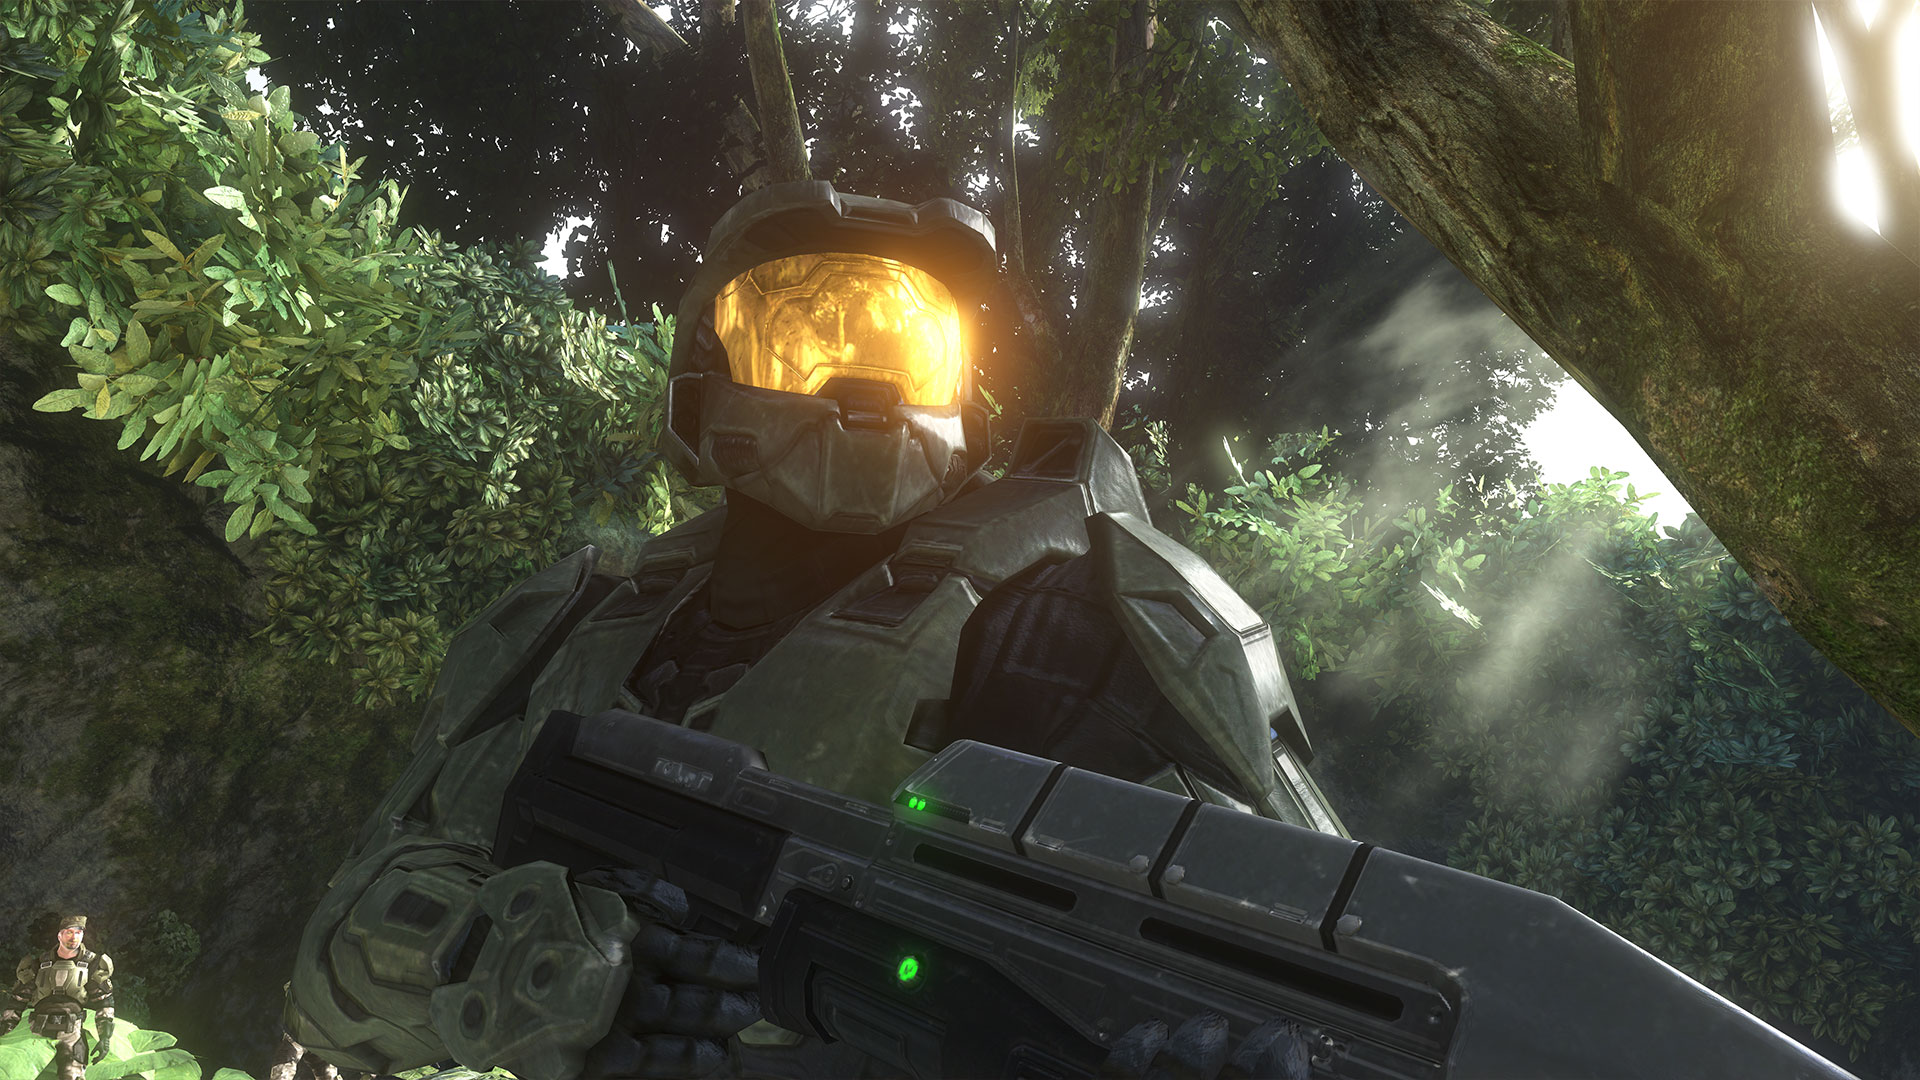 Halo 3, Microsoft Game Studios